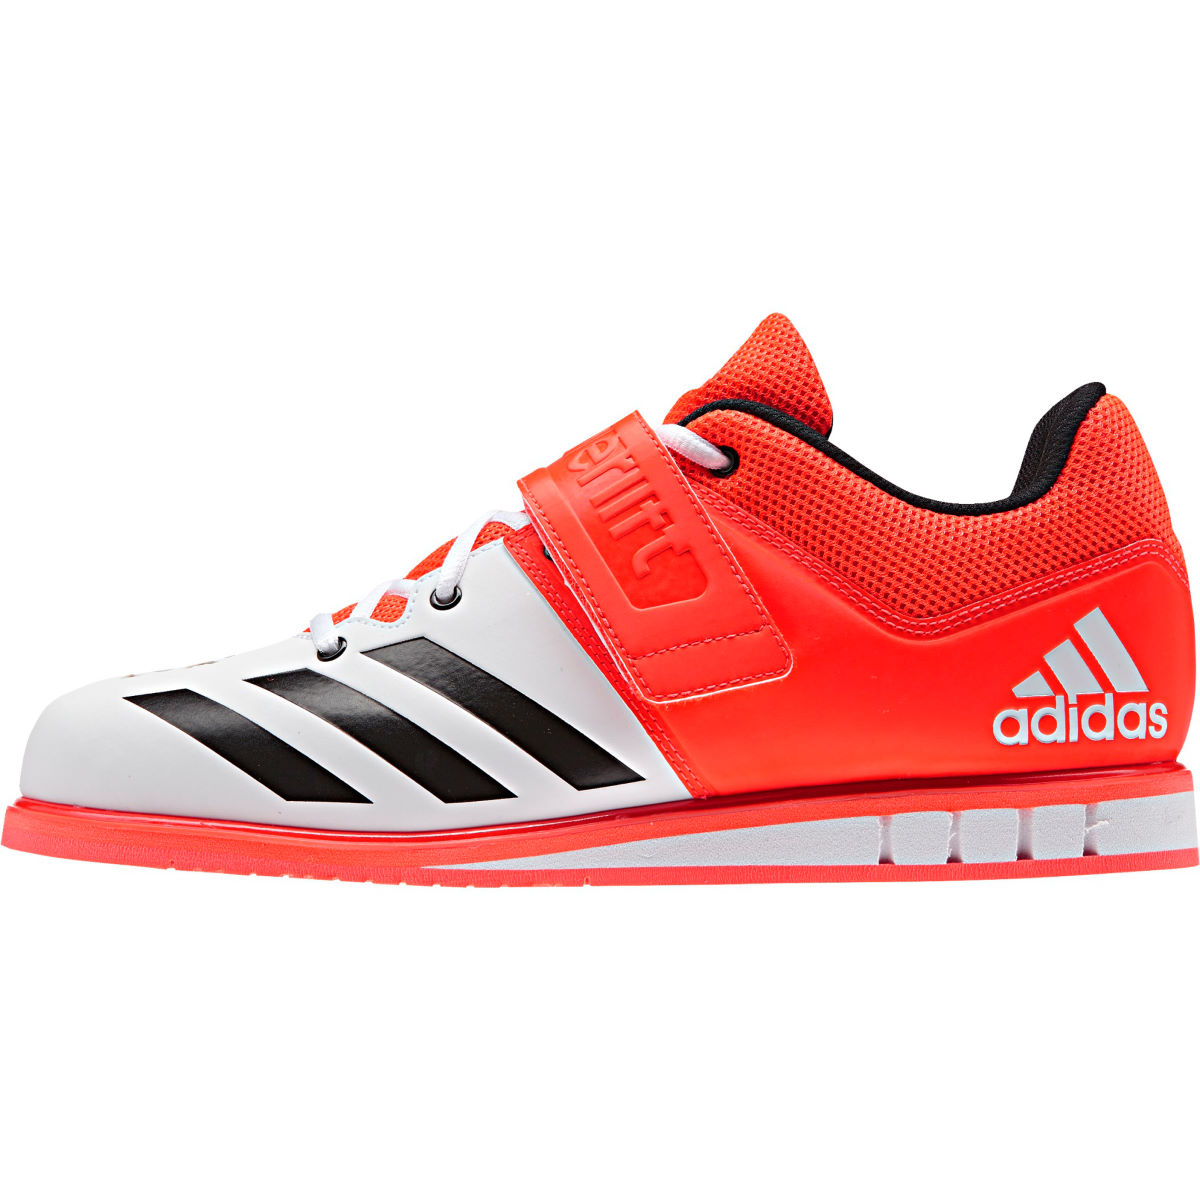 Chaussures Adidas Powerlift 3 (AH16) - 10 UK Red/Black/White Chaussures d'entraînement